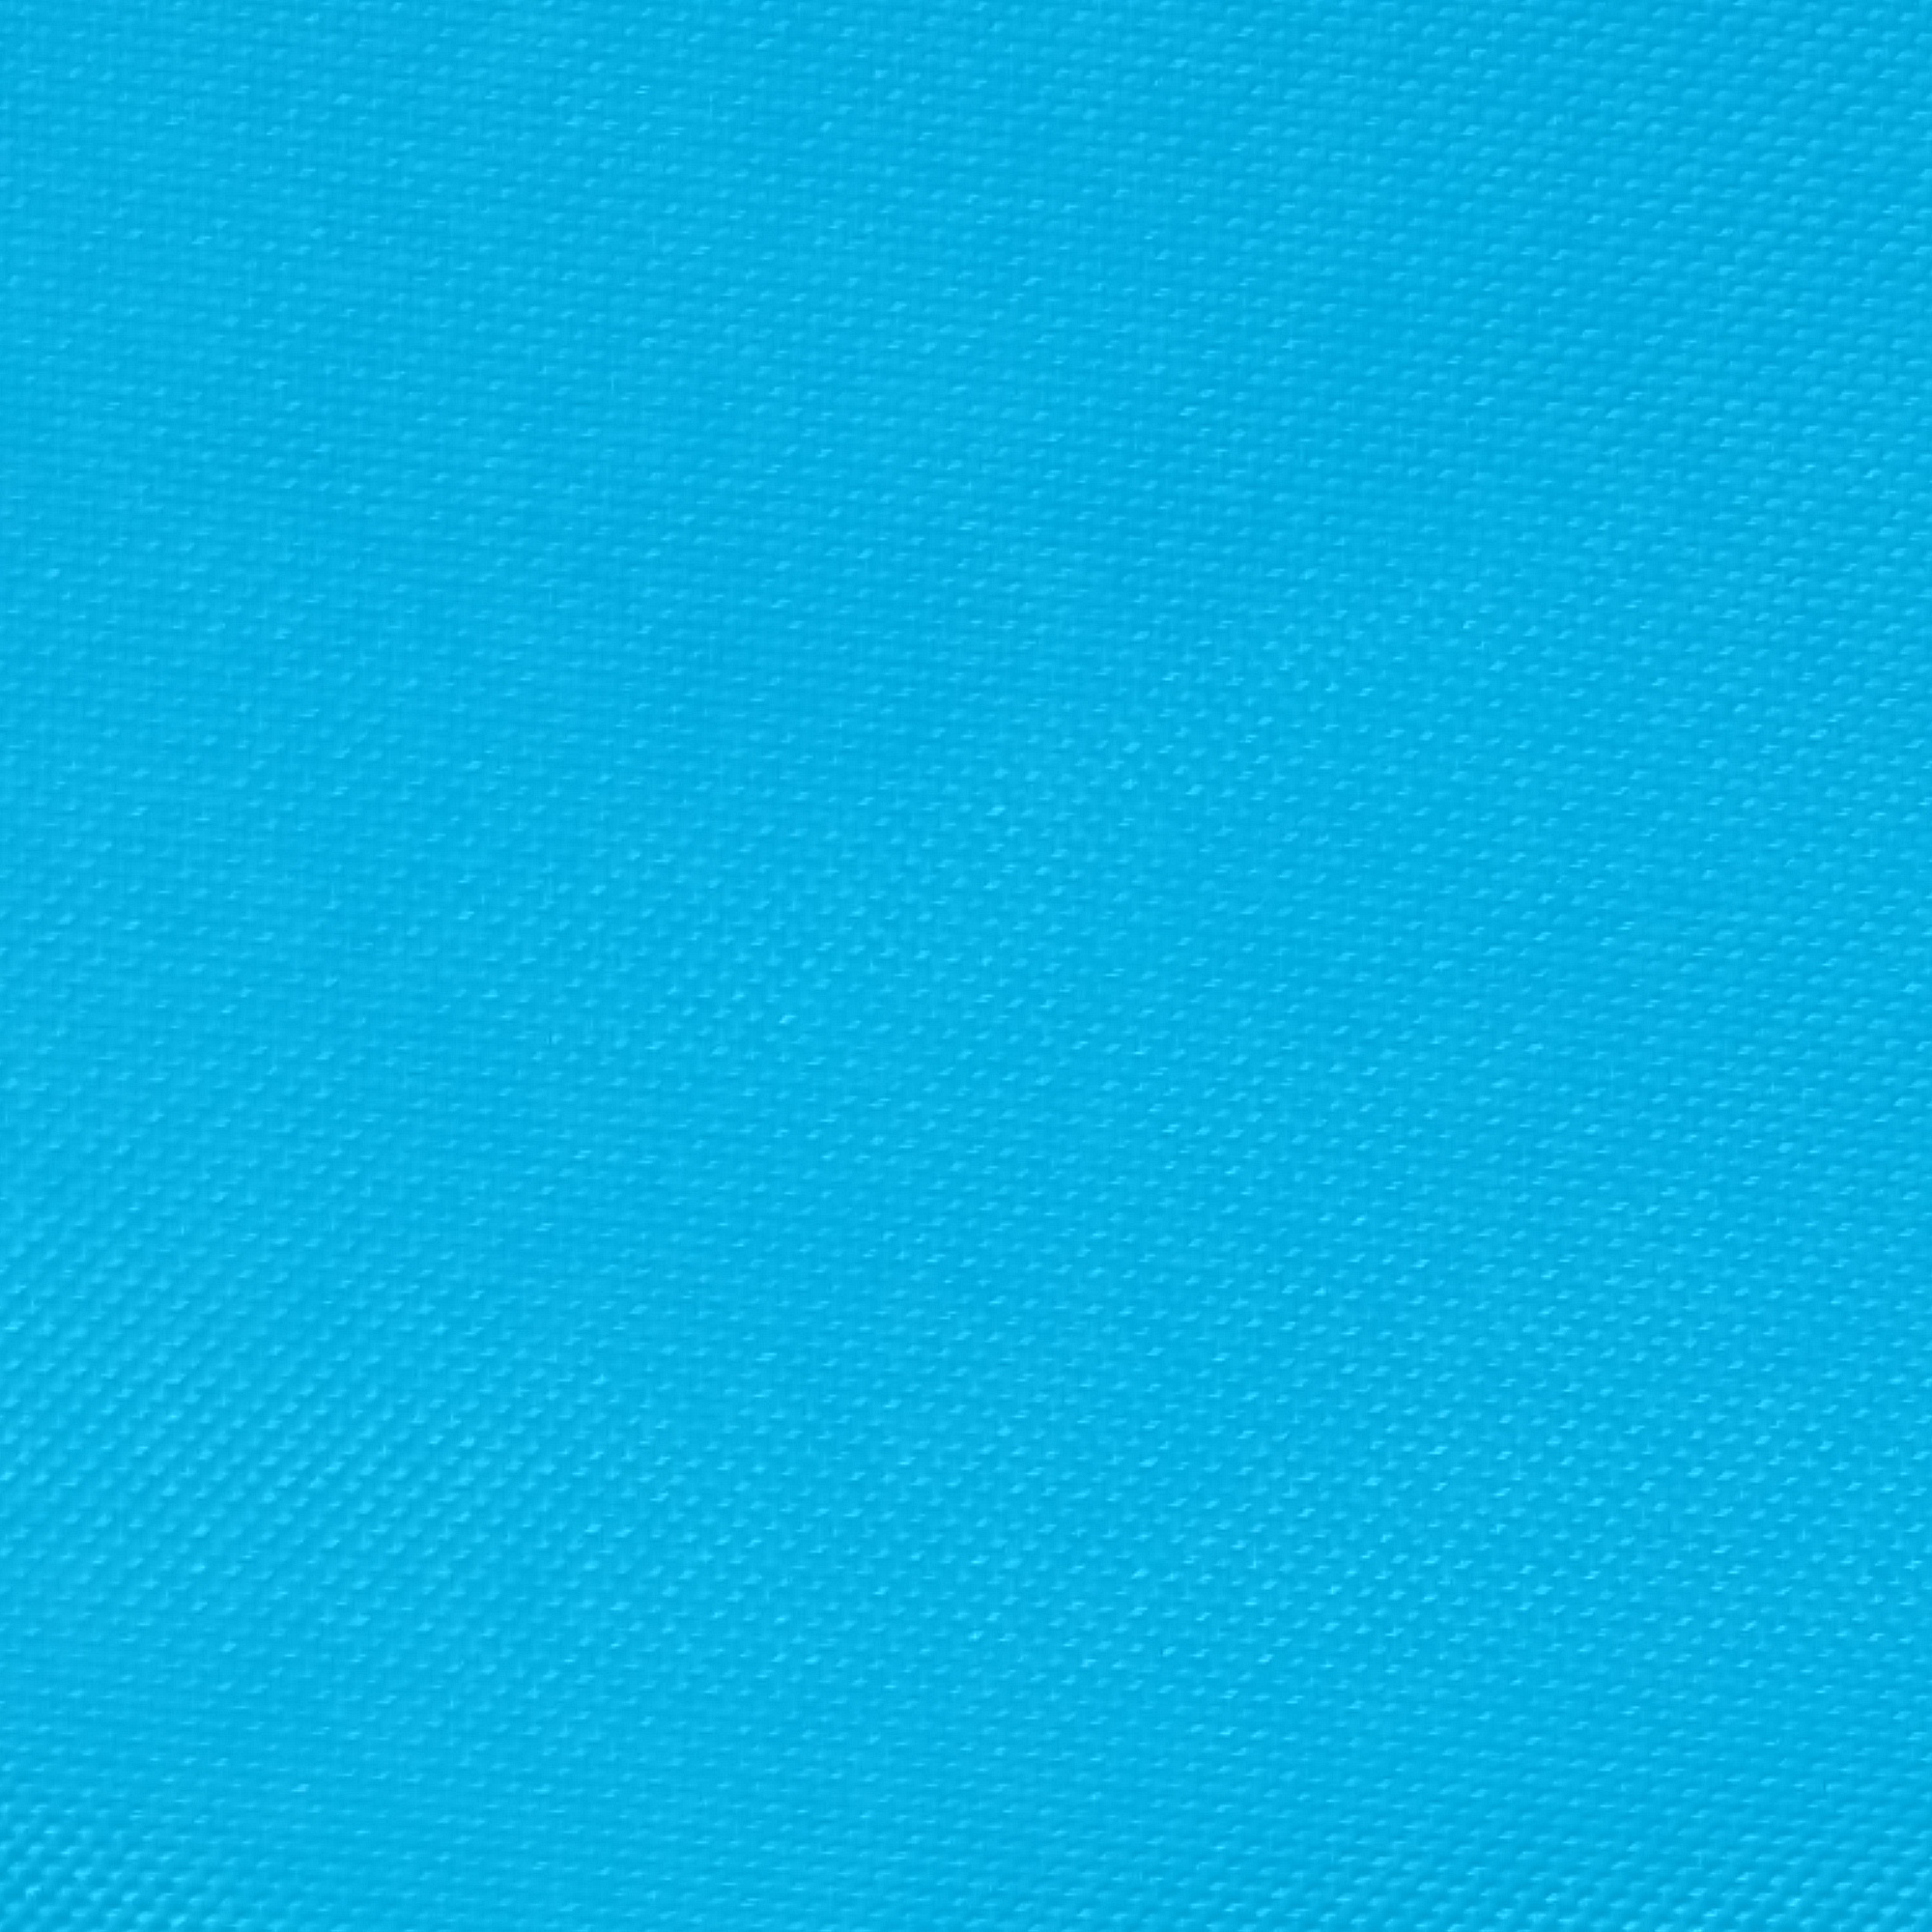 200 Denier Coated Oxford Nylon, 60 Inches Wide, Fabric By the Yard, Aqua